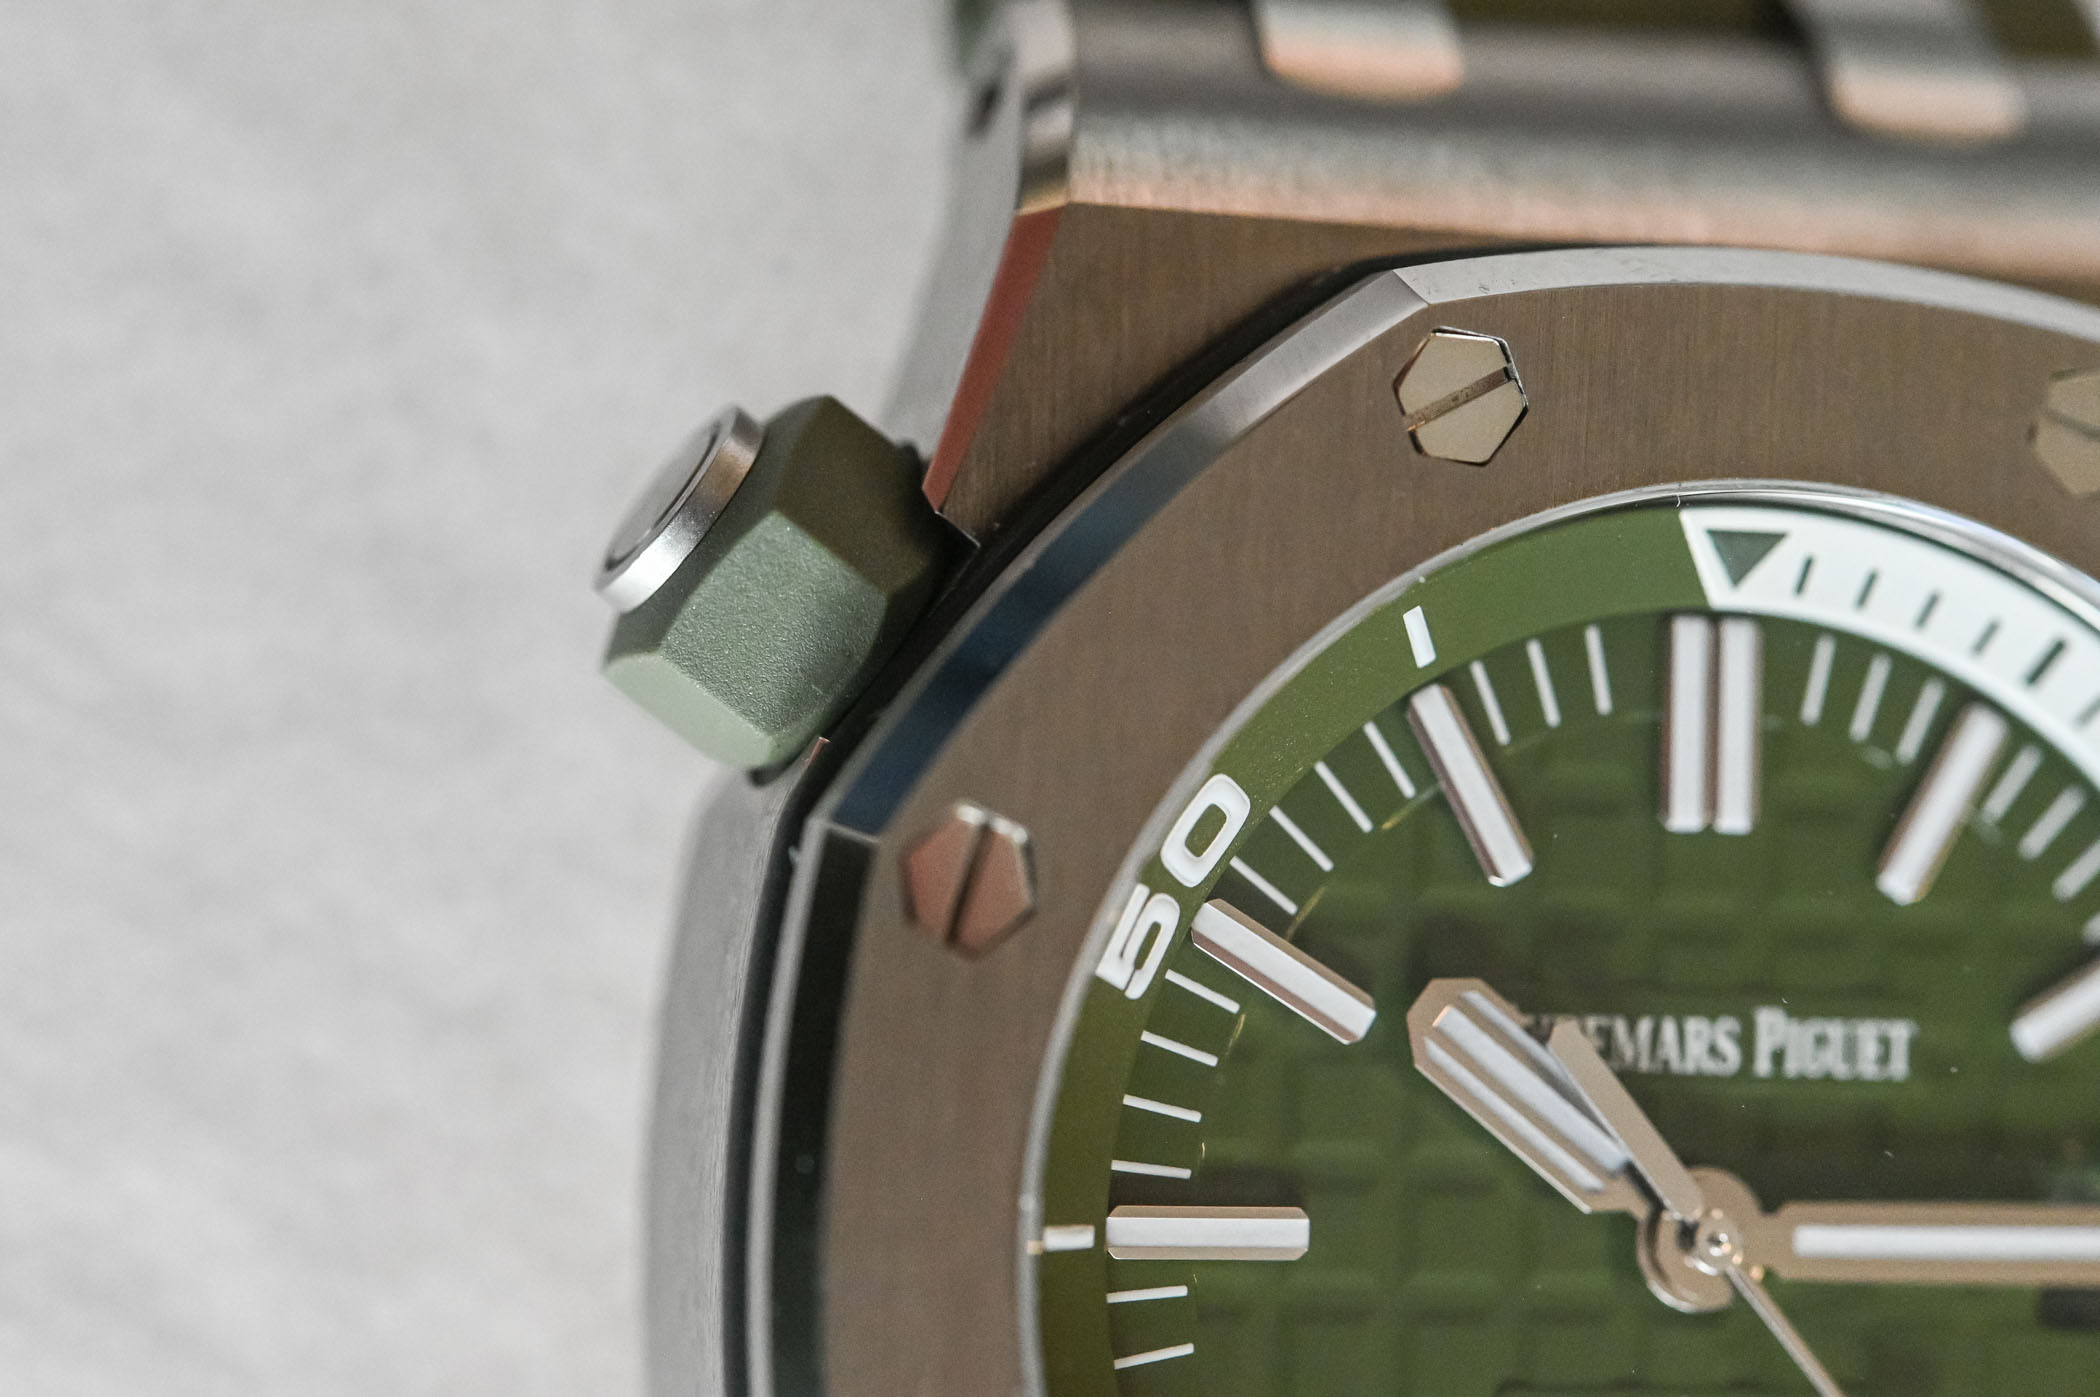 Audemars Piguet Royal Oak Offshore Diver Khaki Green - 15710ST.OO.A052CA.01 - Review - 3